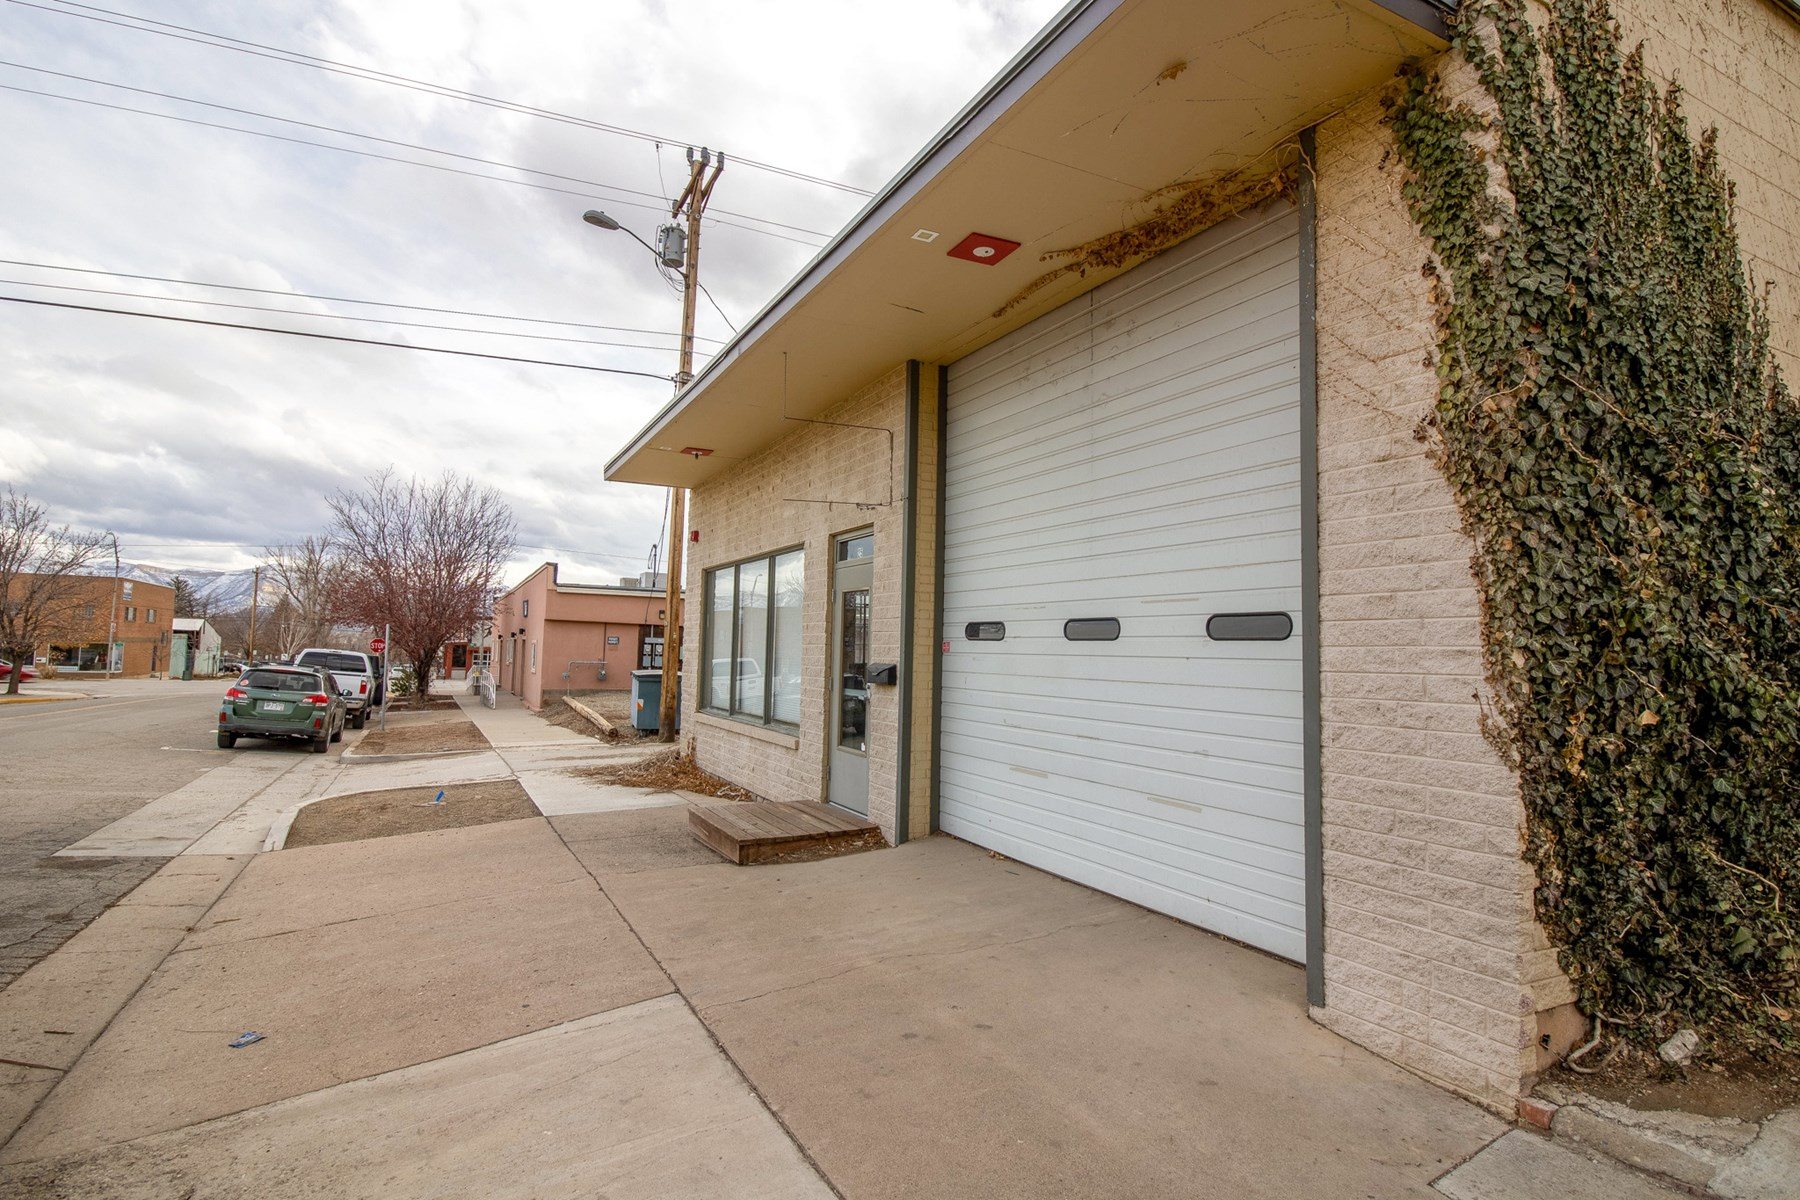 Commercial Property For Sale in Montezuma County, CO